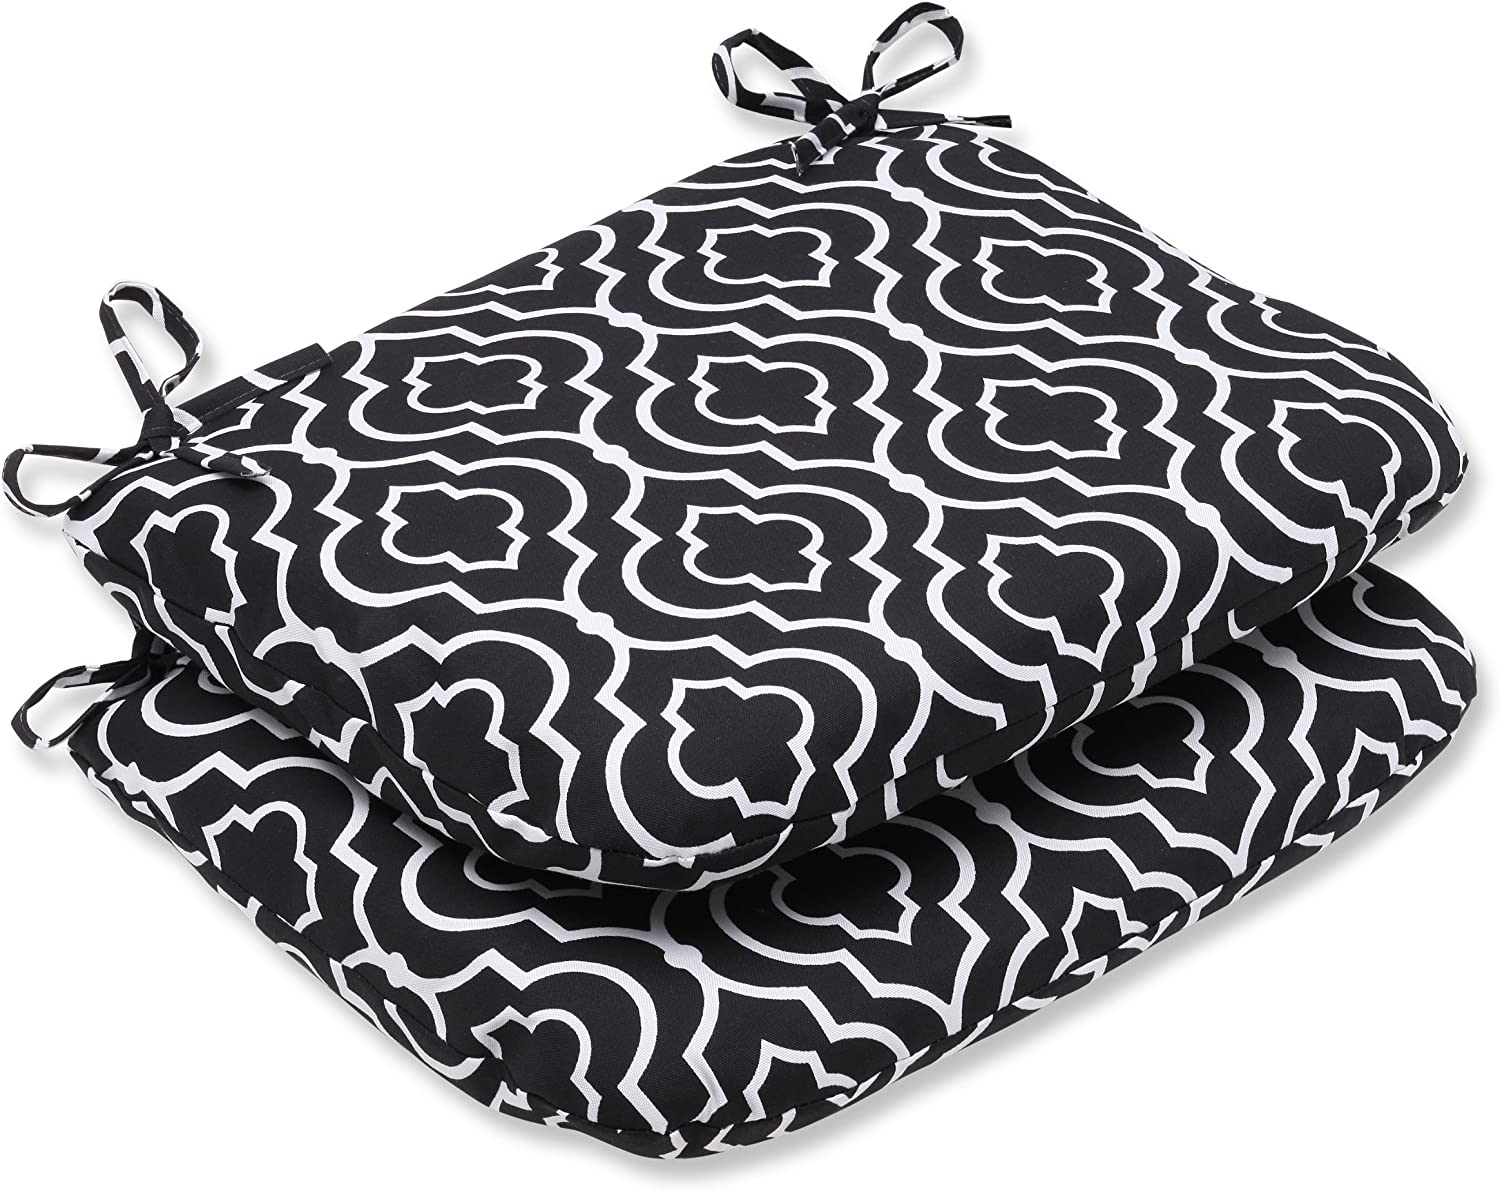 Pillow Perfect Outdoor Starlet Night Rounded Corners Seat Cushion, Set of 2